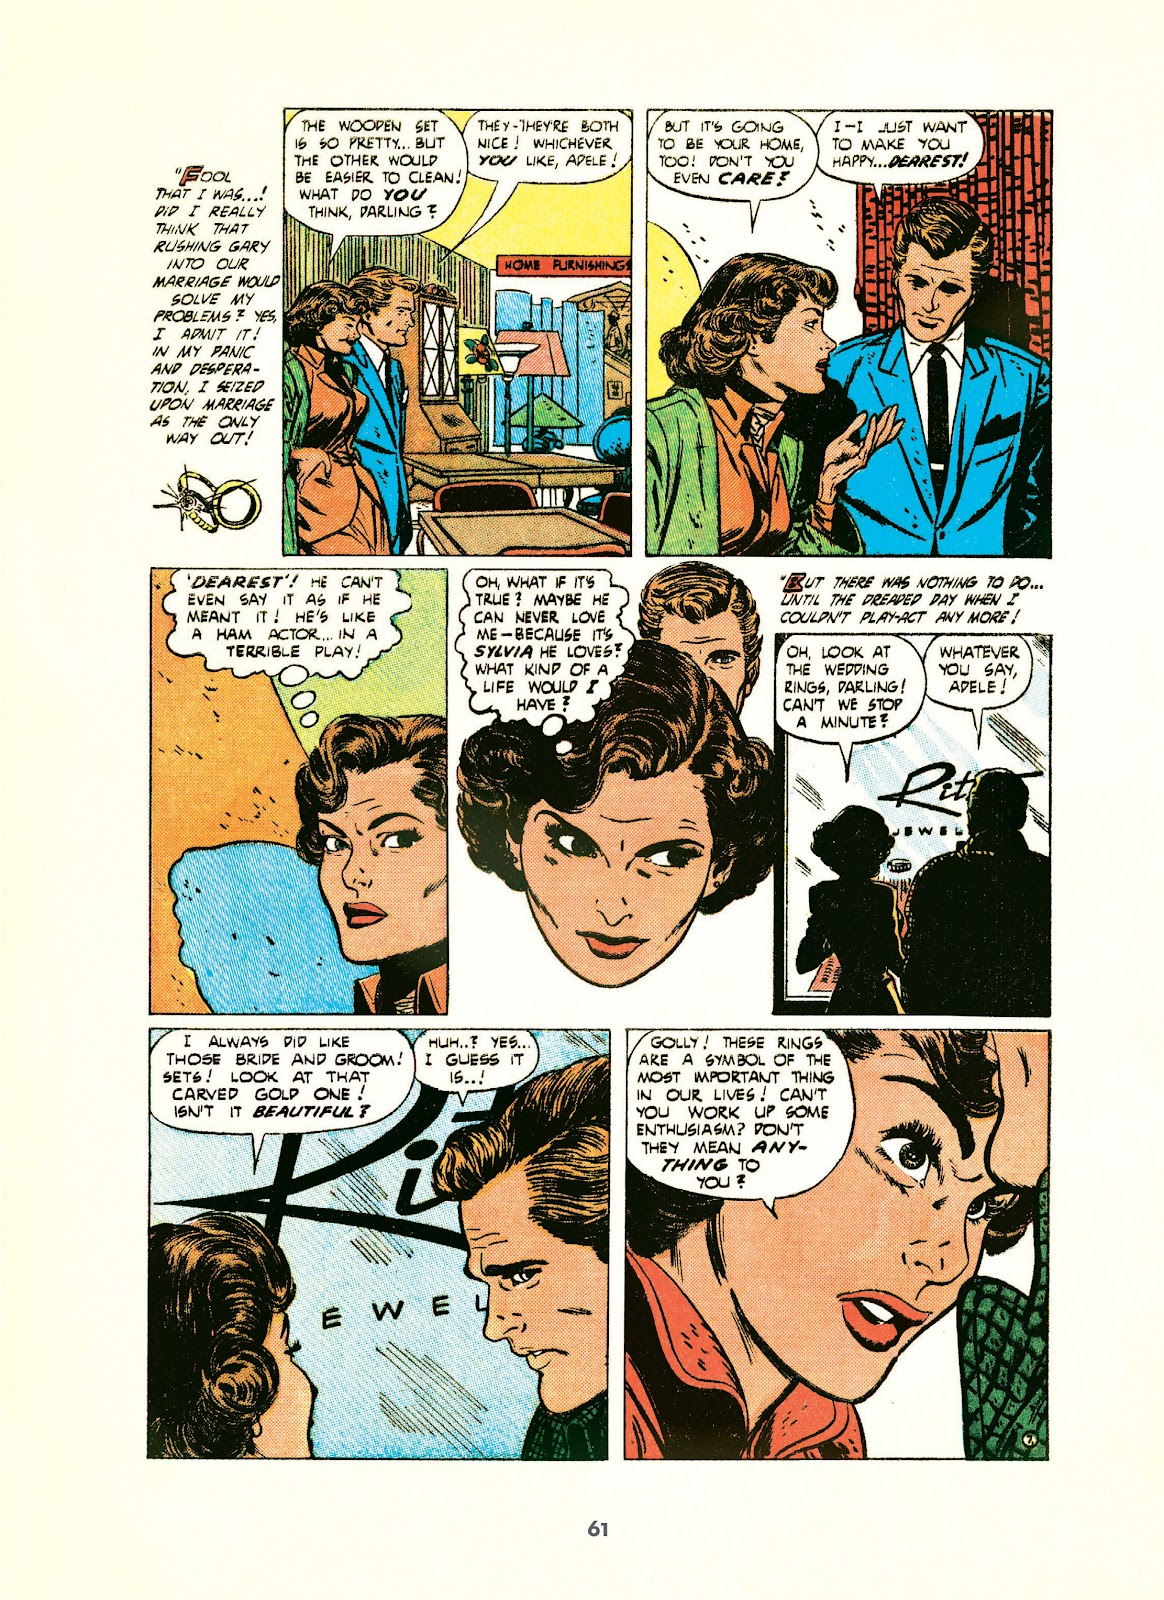 Read online Setting the Standard: Comics by Alex Toth 1952-1954 comic -  Issue # TPB (Part 1) - 60